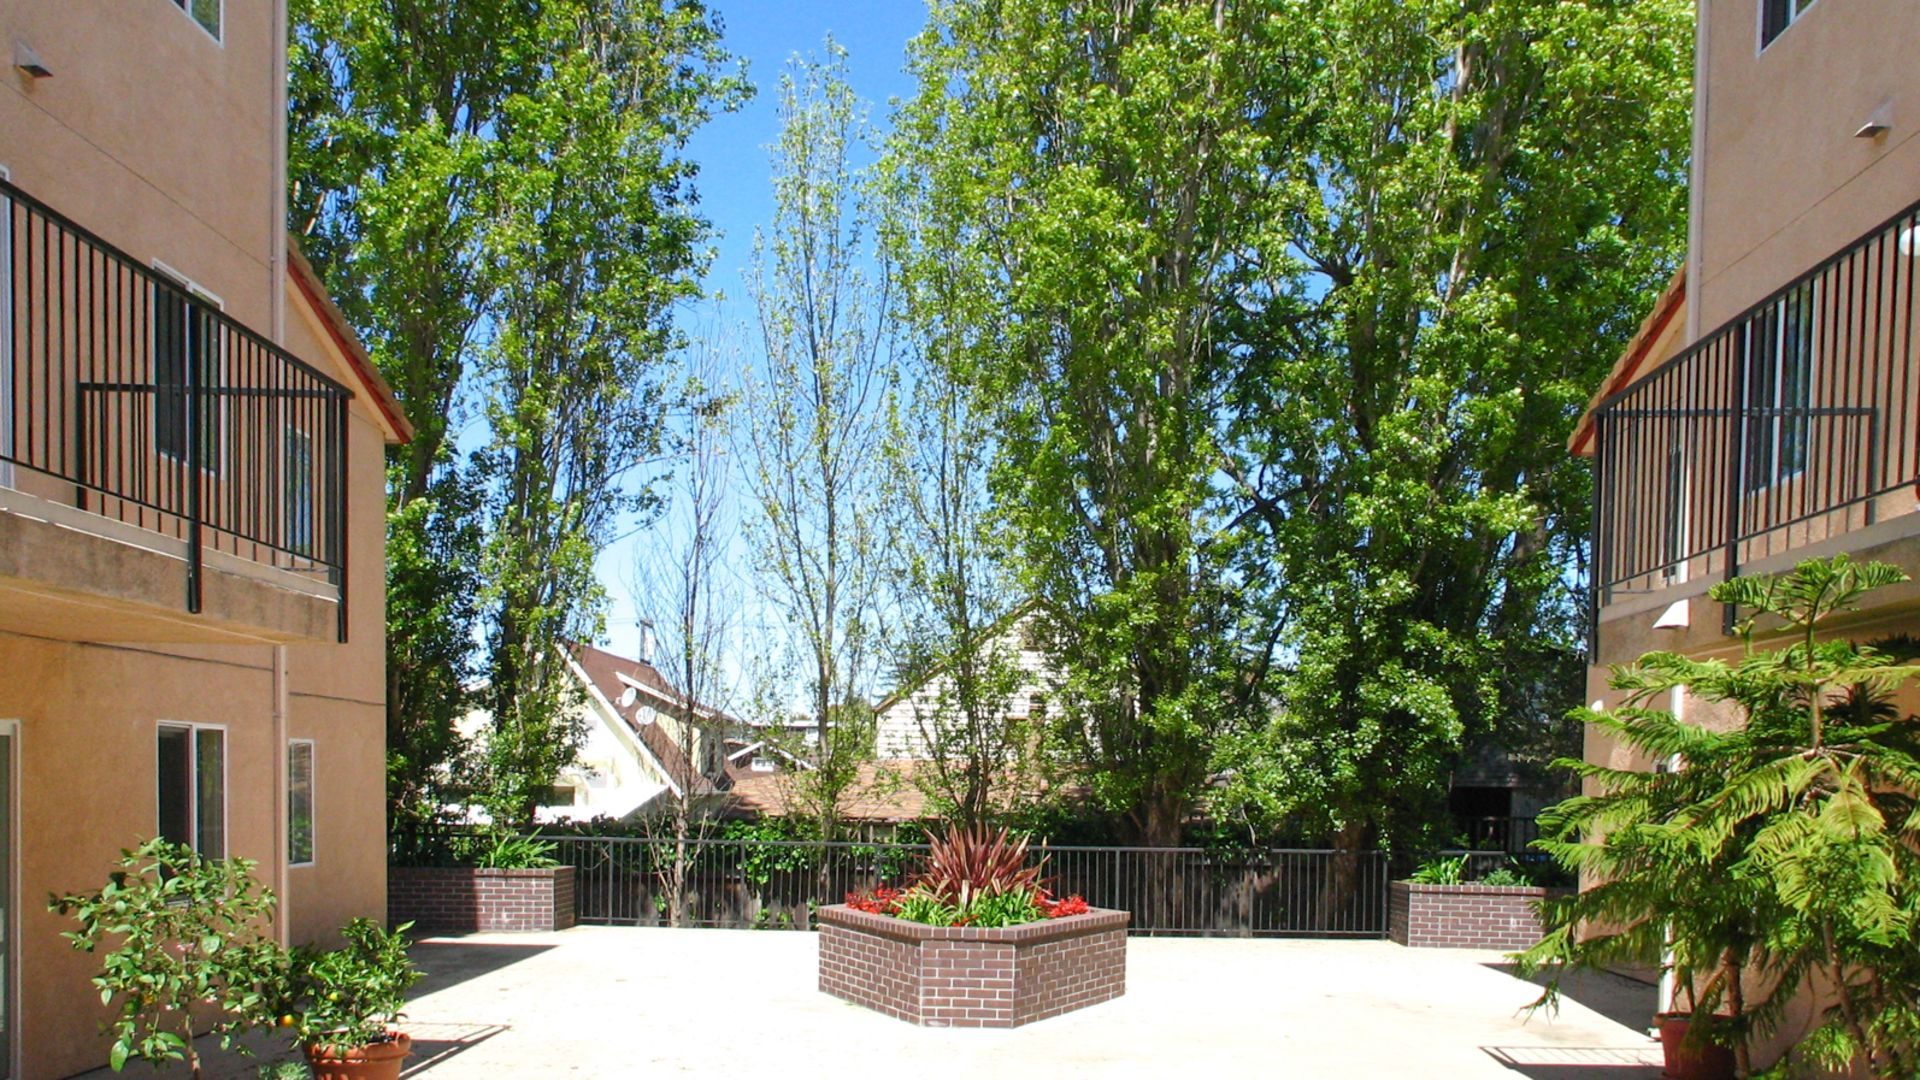 Renaissance Villas Apartments - Courtyard